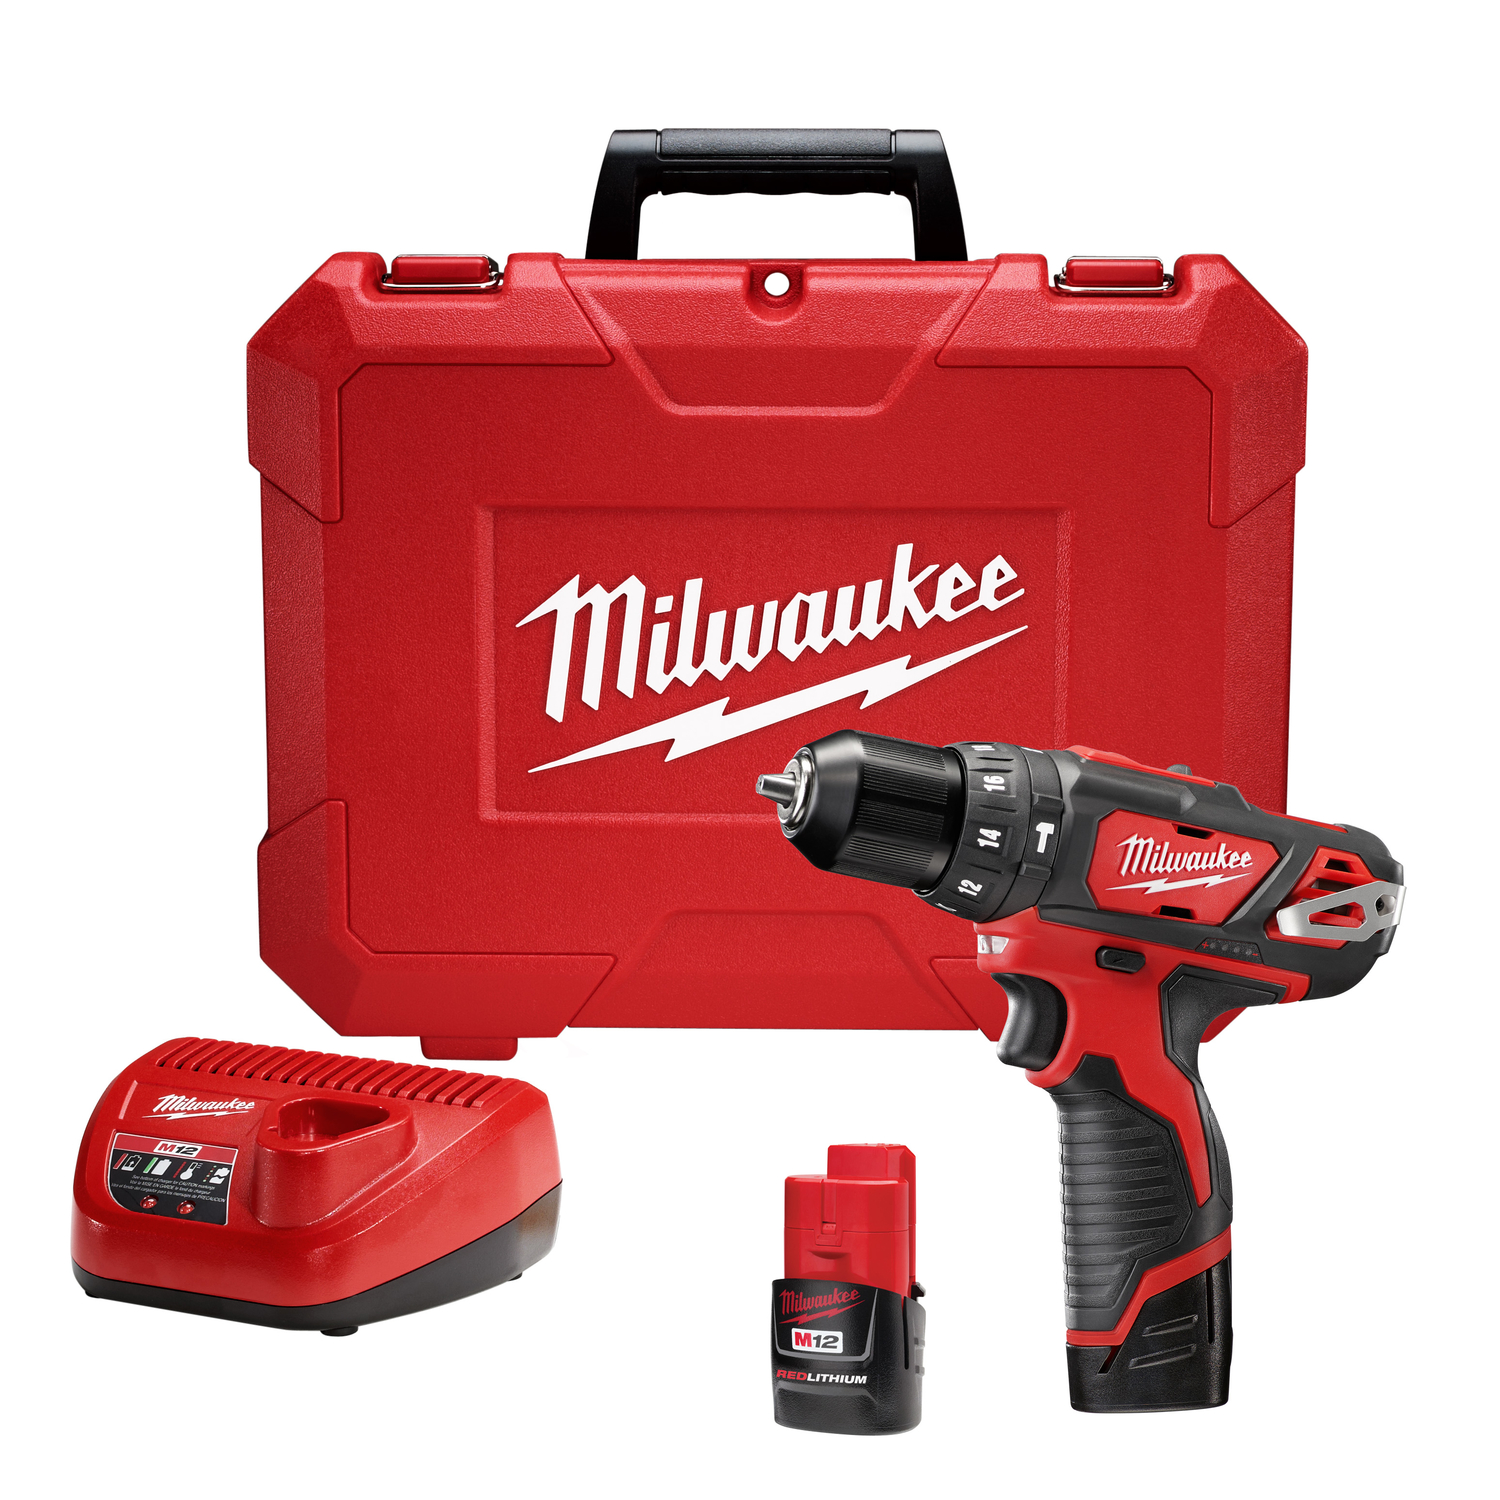 Milwaukee  Drill Driver Combo Kit 12 volts 2 Speed 0-400/0-1,500 rpm 3/8 in. Ratcheting Li-Ion